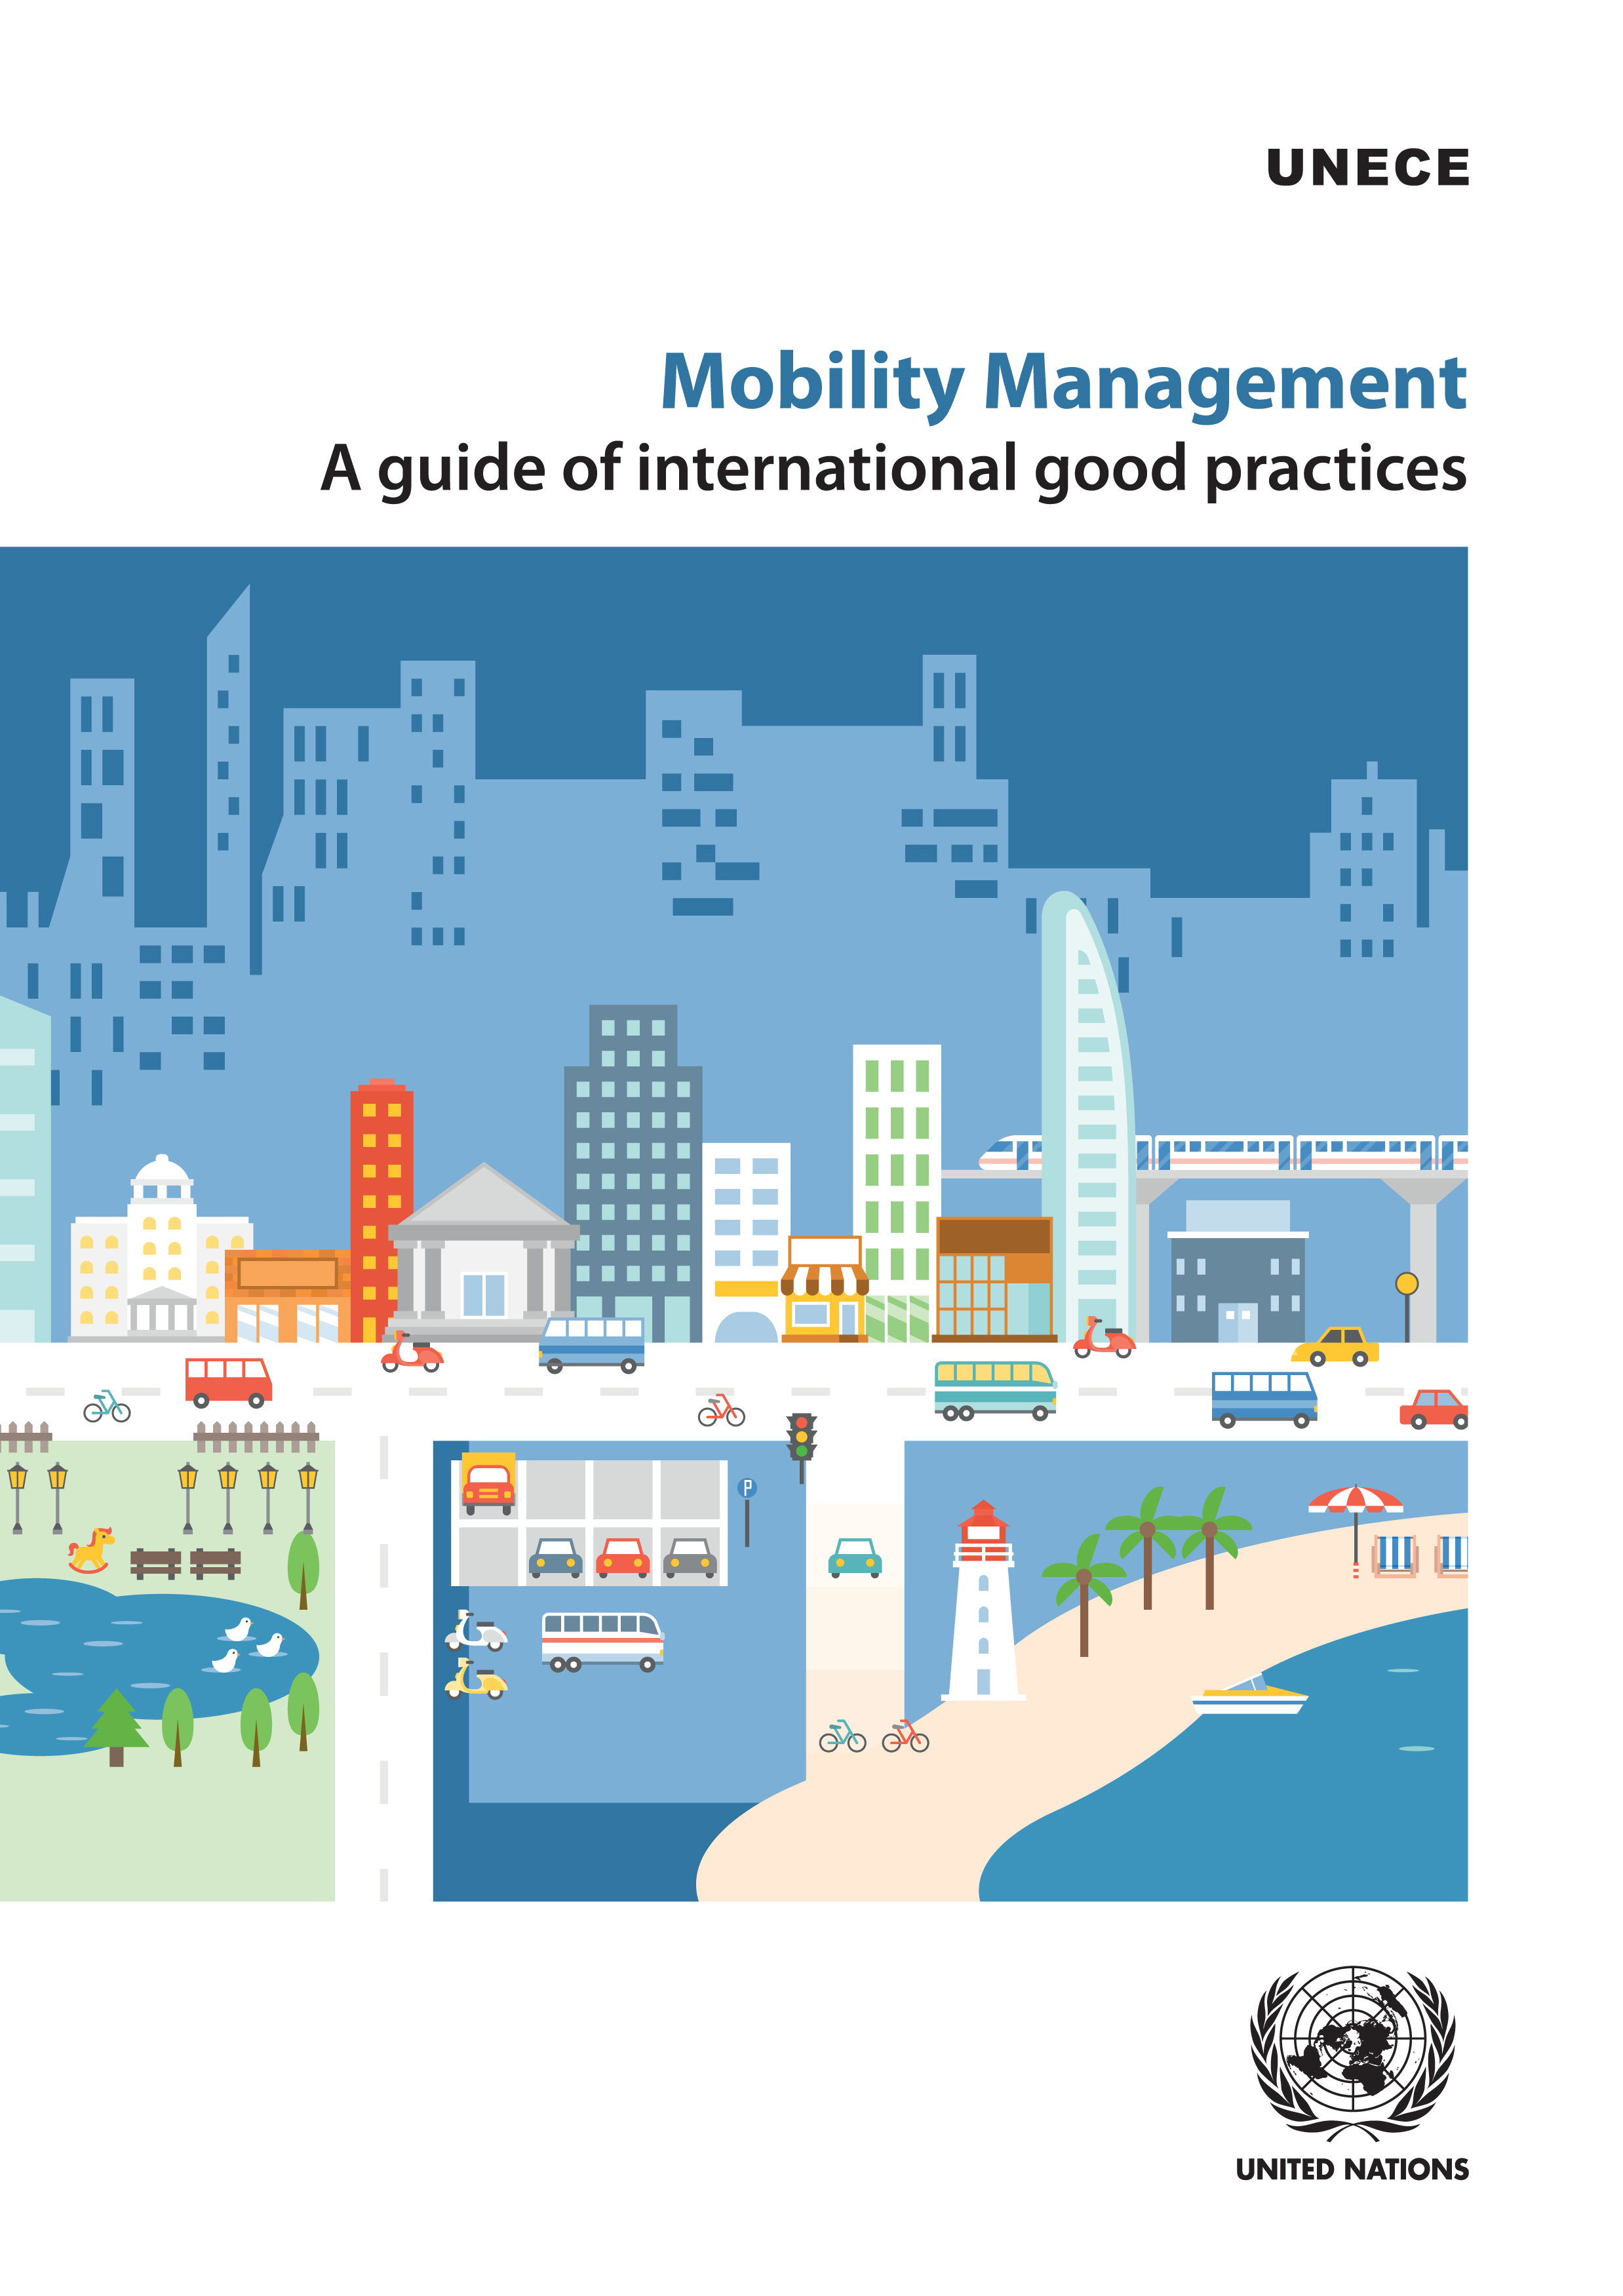 MOBILITY MANAGEMENT: A GUIDE INTL